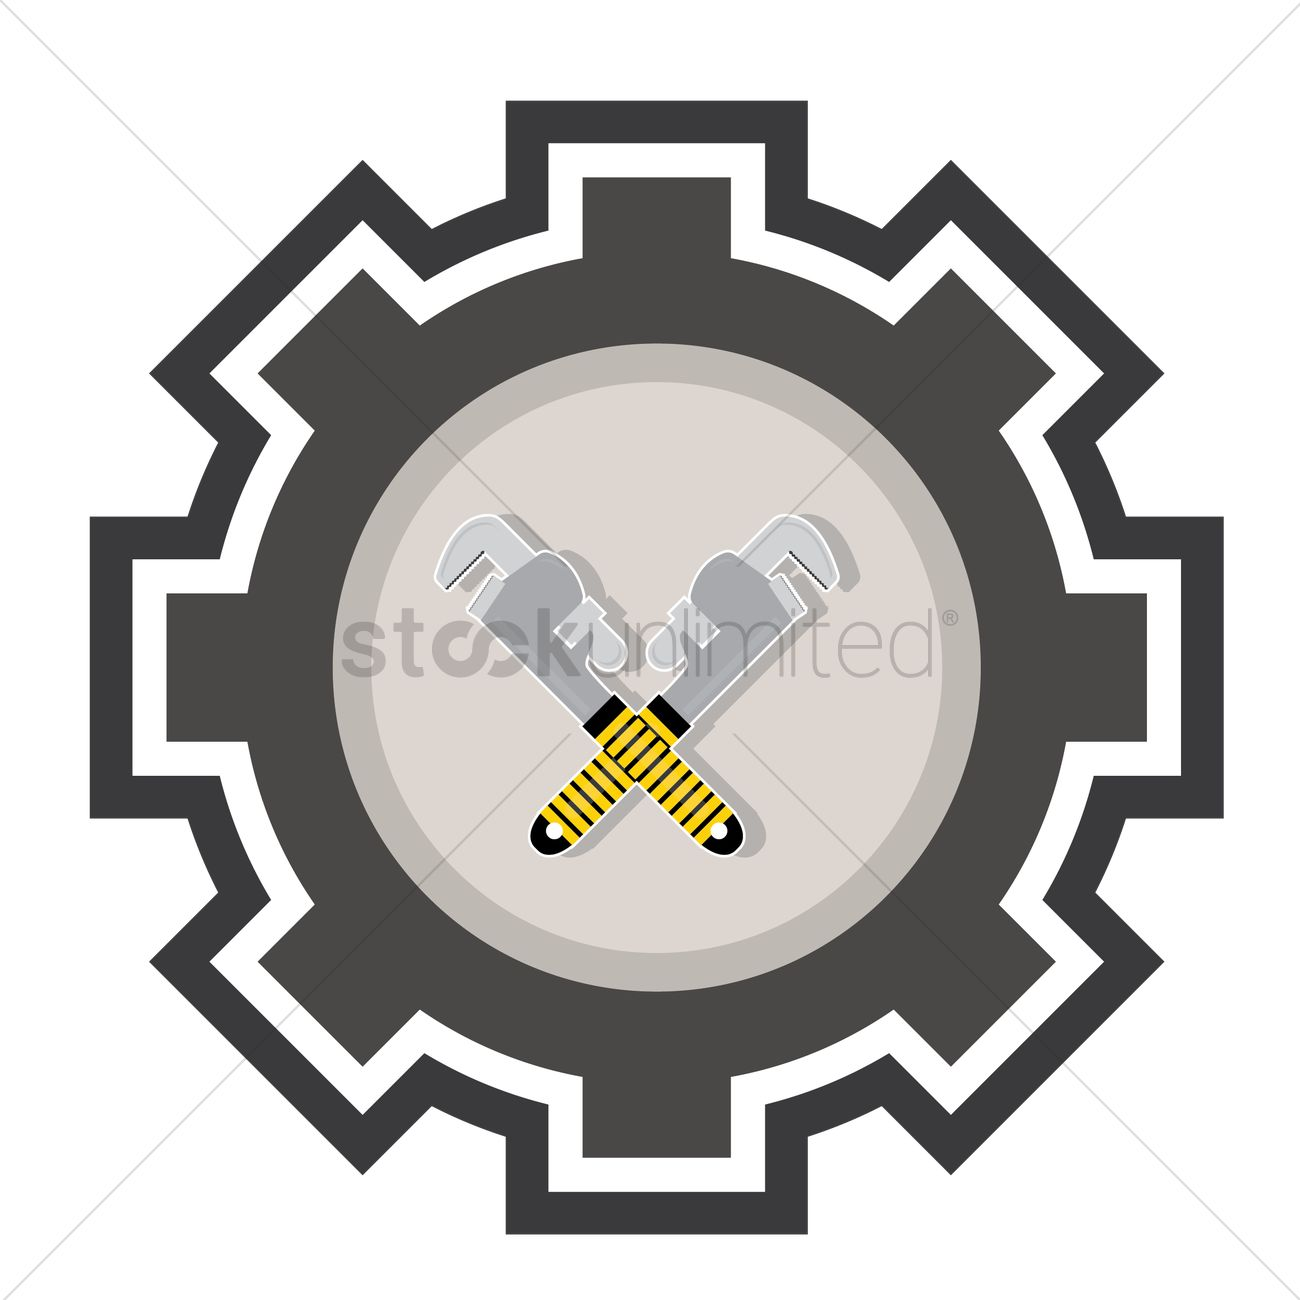 crossed pipe wrenches vector graphic  sc 1 st  StockUnlimited & Crossed pipe wrenches Vector Image - 1619727   StockUnlimited